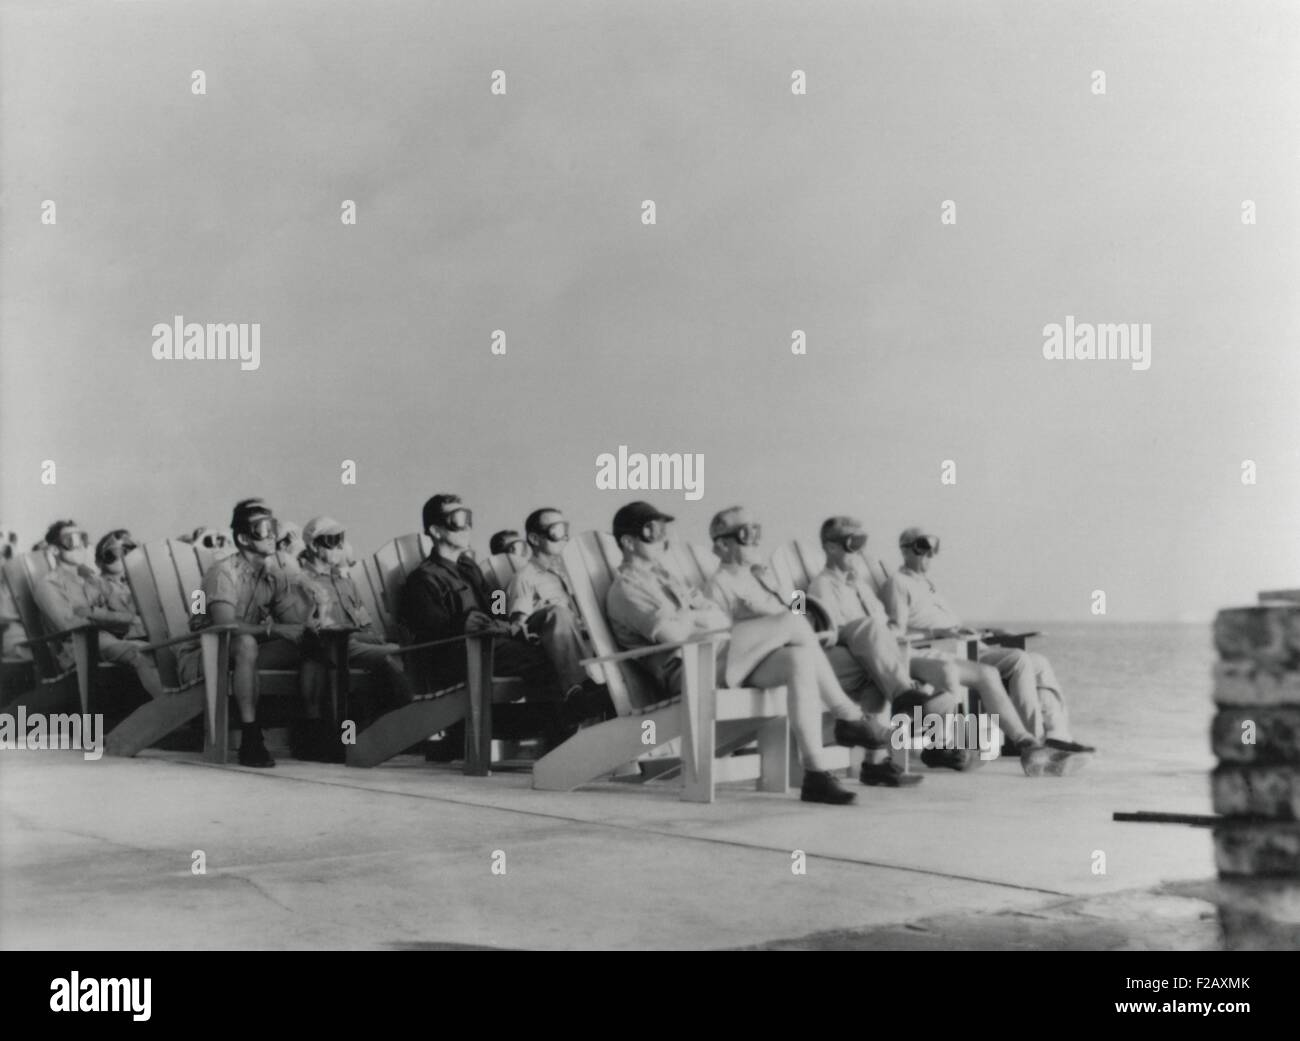 VIPs view the DOG shot, an 81 kiloton atomic detonation wearing safety goggles. They are sitting on Adirondack chair - Stock Image